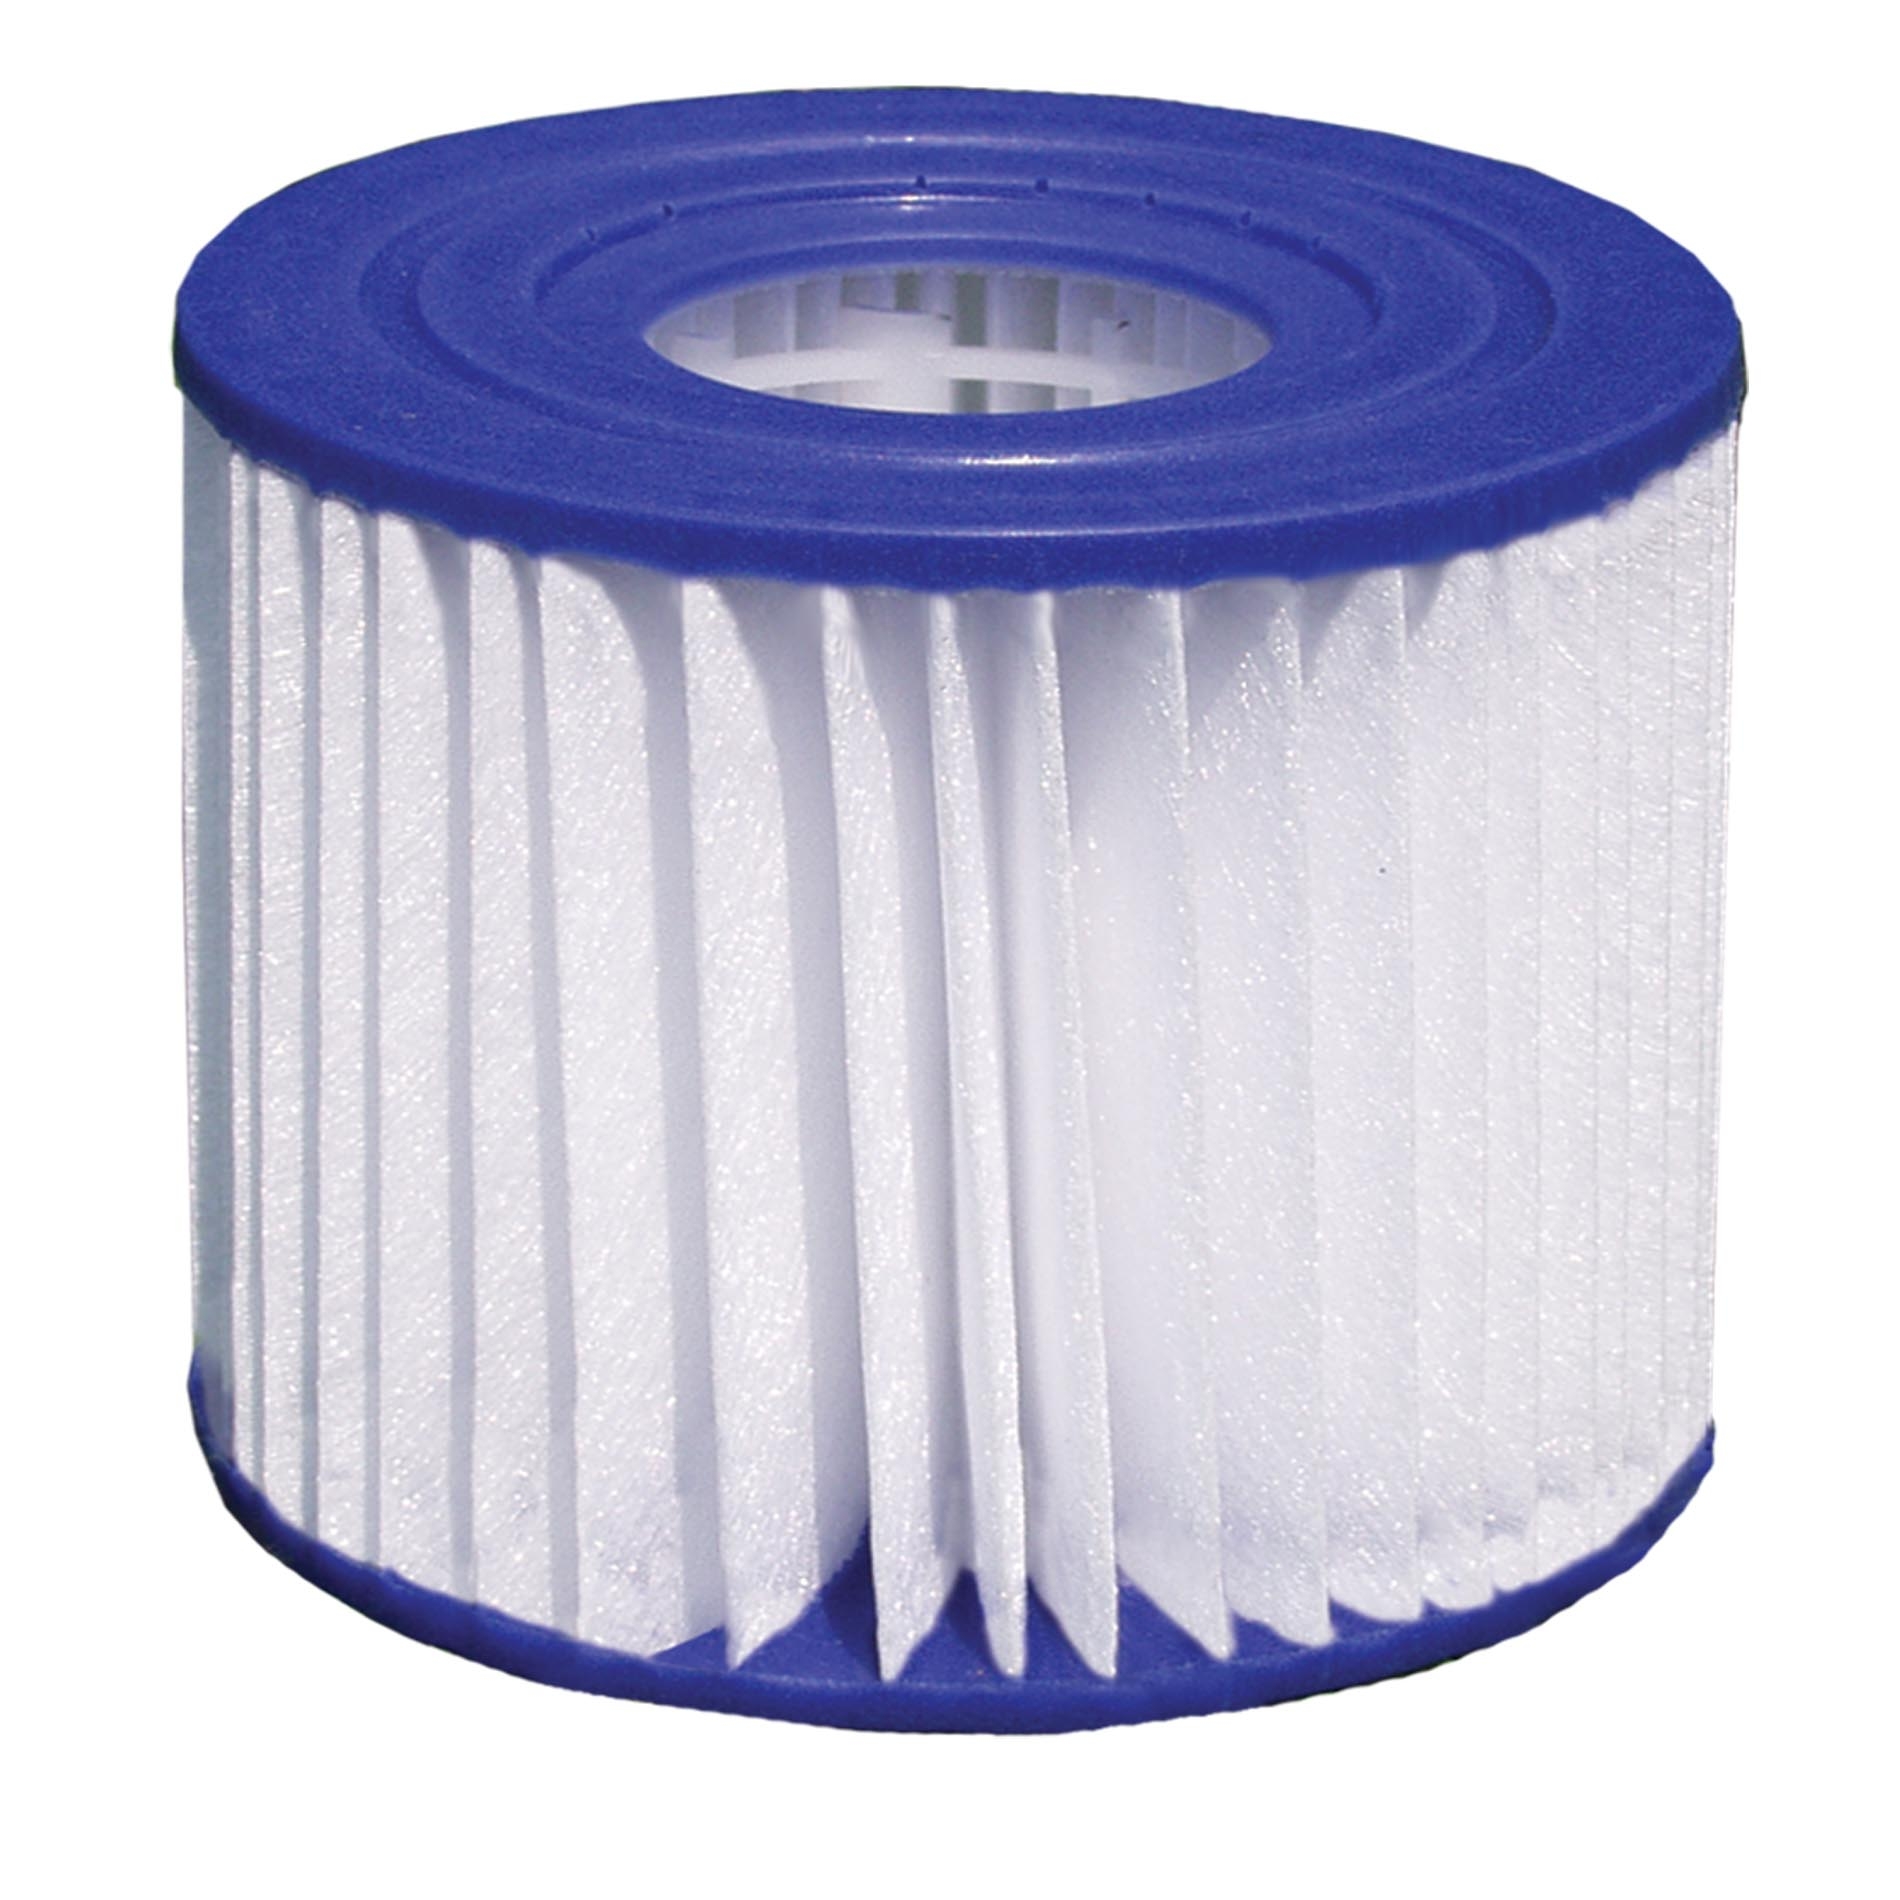 "Summer Escapes Single Filter Cartridge Type A/C 4.13"" X 8"" PartNumber: 05231026000P KsnValue: 1374311 MfgPartNumber: K-F0408067"